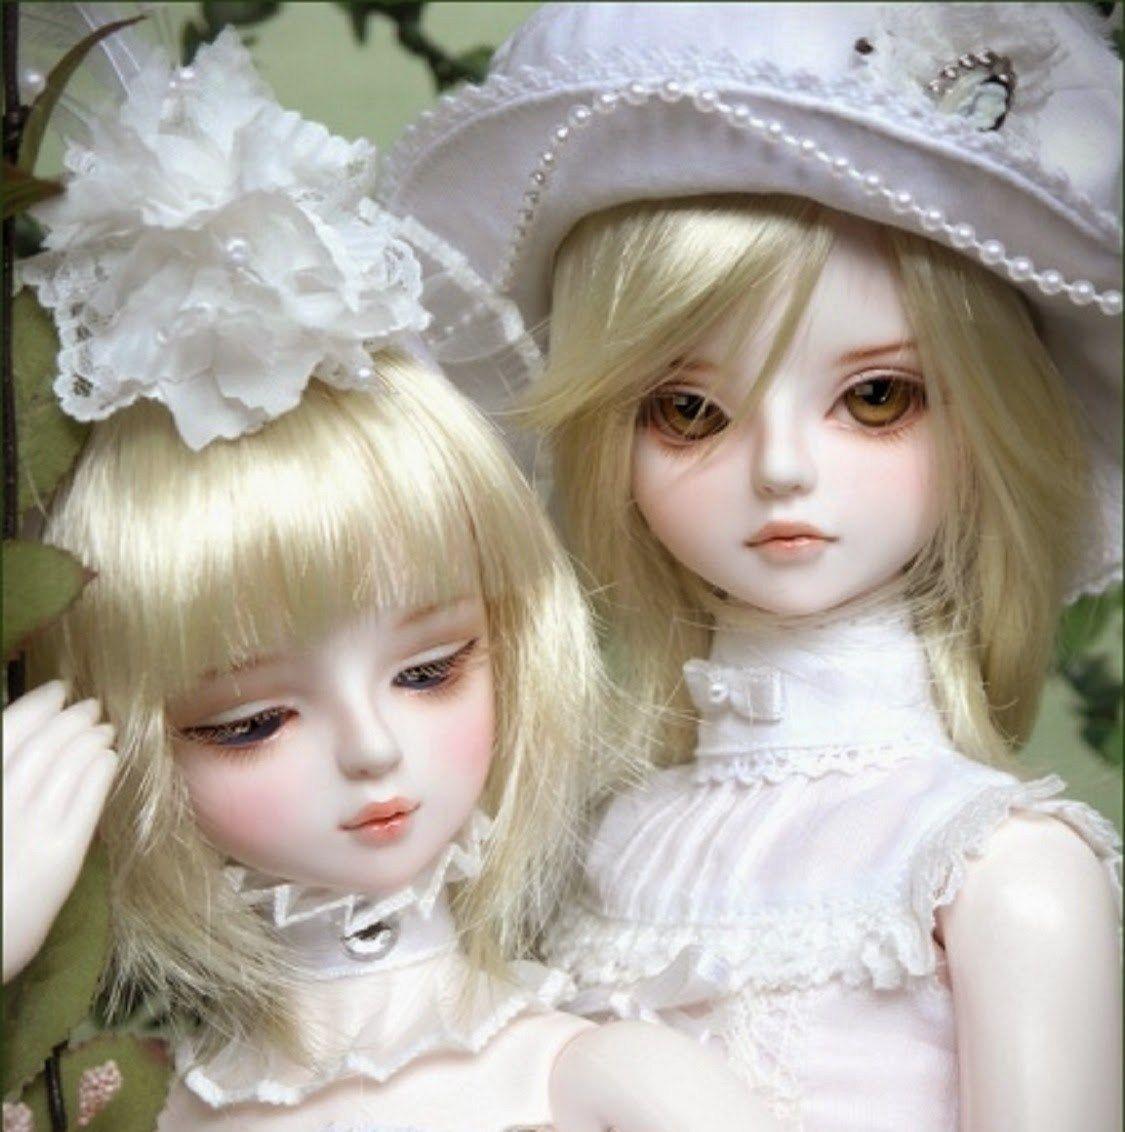 Cute And Beautiful Queen Doll: Beautiful And Cute Dolls Wallpapers